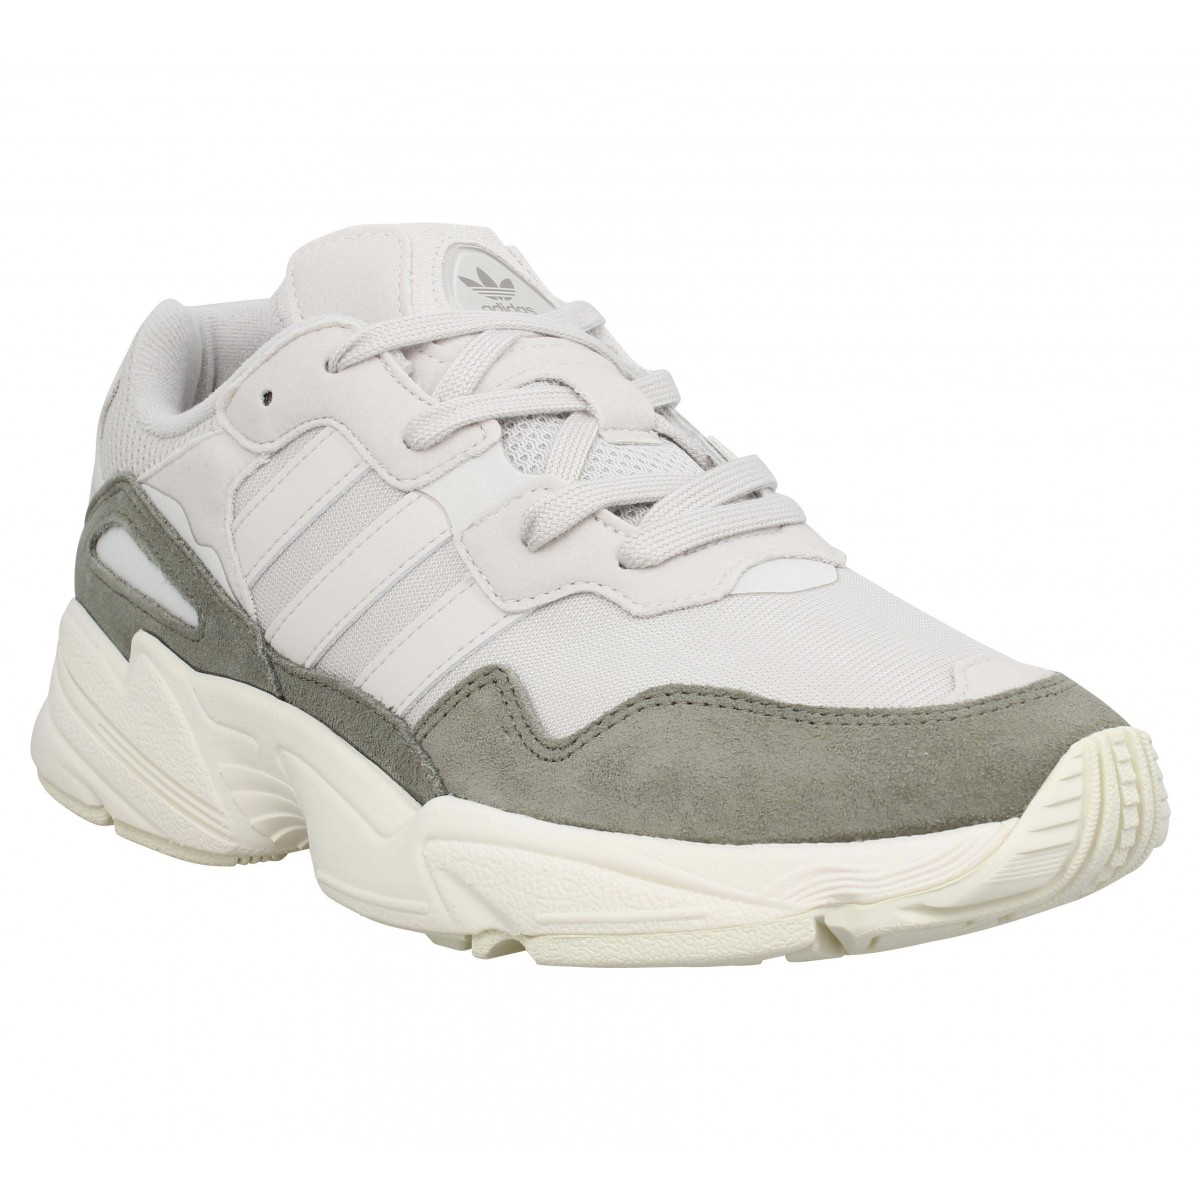 Adidas Homme Yung 96 Toile -39 1/3-blanc...